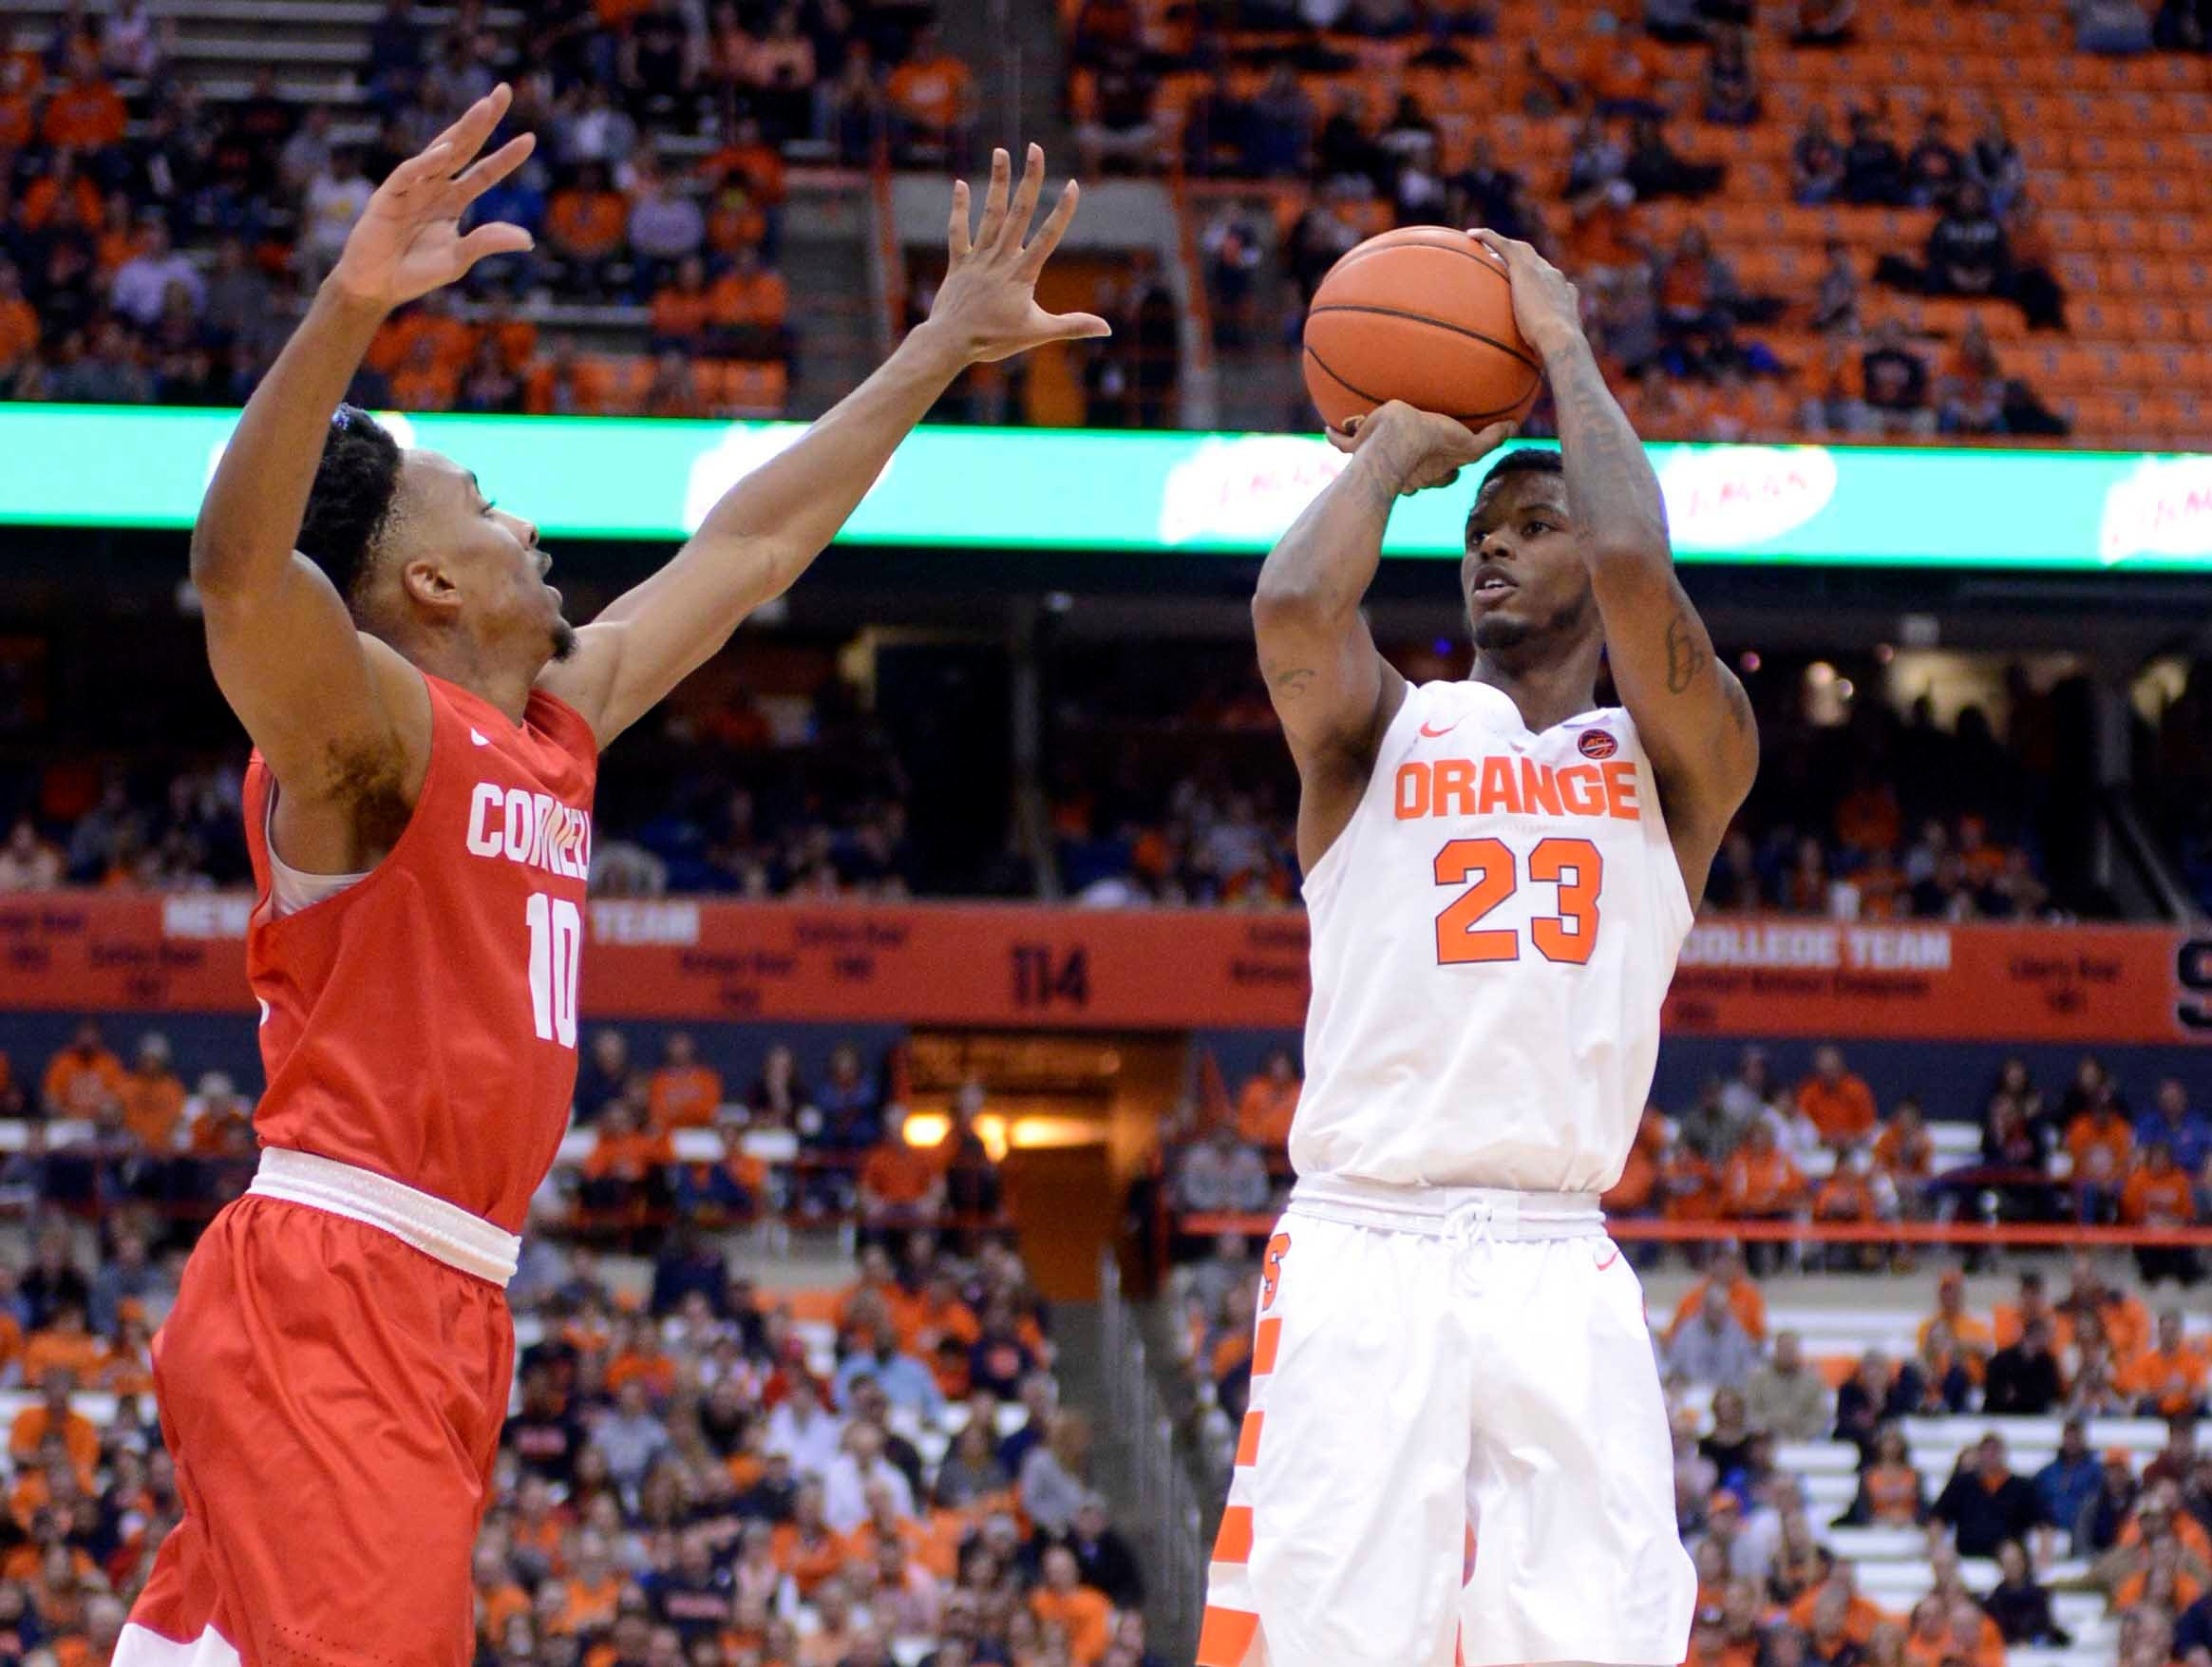 Dec 1, 2018; Syracuse, NY, USA; Syracuse Orange guard Frank Howard (23) takes a jump shot as Cornell Big Red guard Matt Morgan (10) defends during the second half at the Carrier Dome. Mandatory Credit: Mark Konezny-USA TODAY Sports